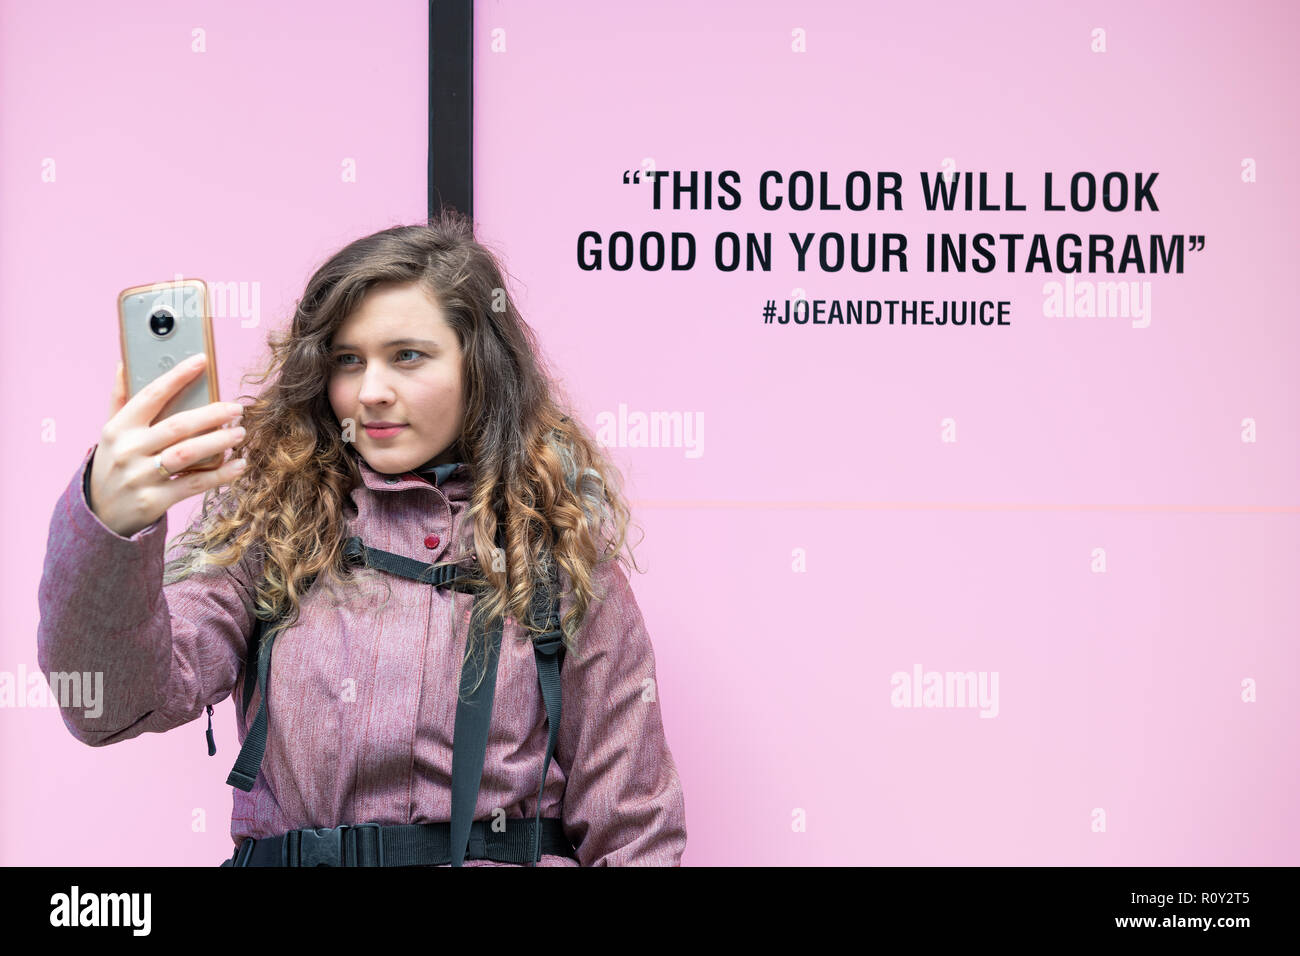 Washington DC, USA - March 9, 2018: Young woman taking selfie against millennial pink color background outside, outdoors in cold winter, dressed in co - Stock Image